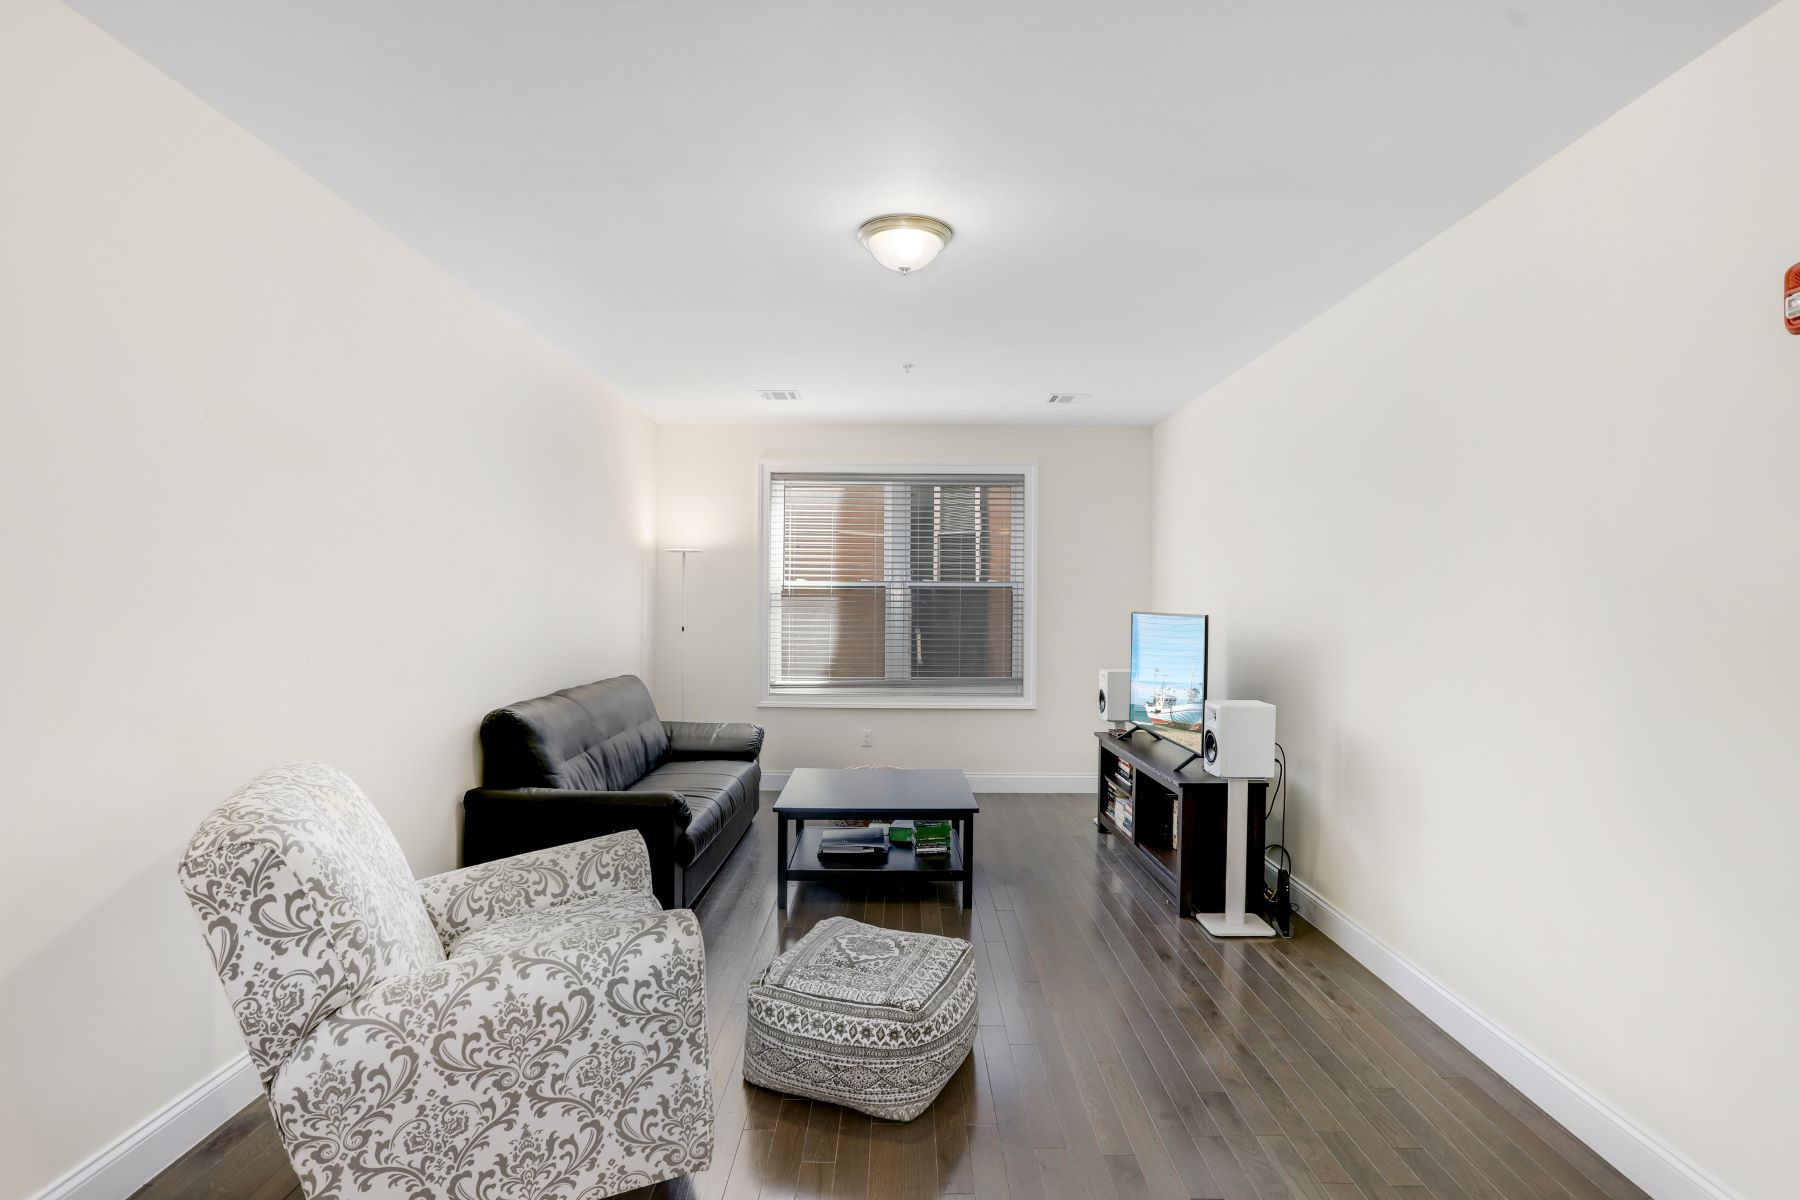 Condominiums for Active at Welcome home to this fabulous 2 Bedroom condo at the Lofts at Lincoln Park. 90 Clinton Avenue, Unit 304 Newark, New Jersey 07114 United States